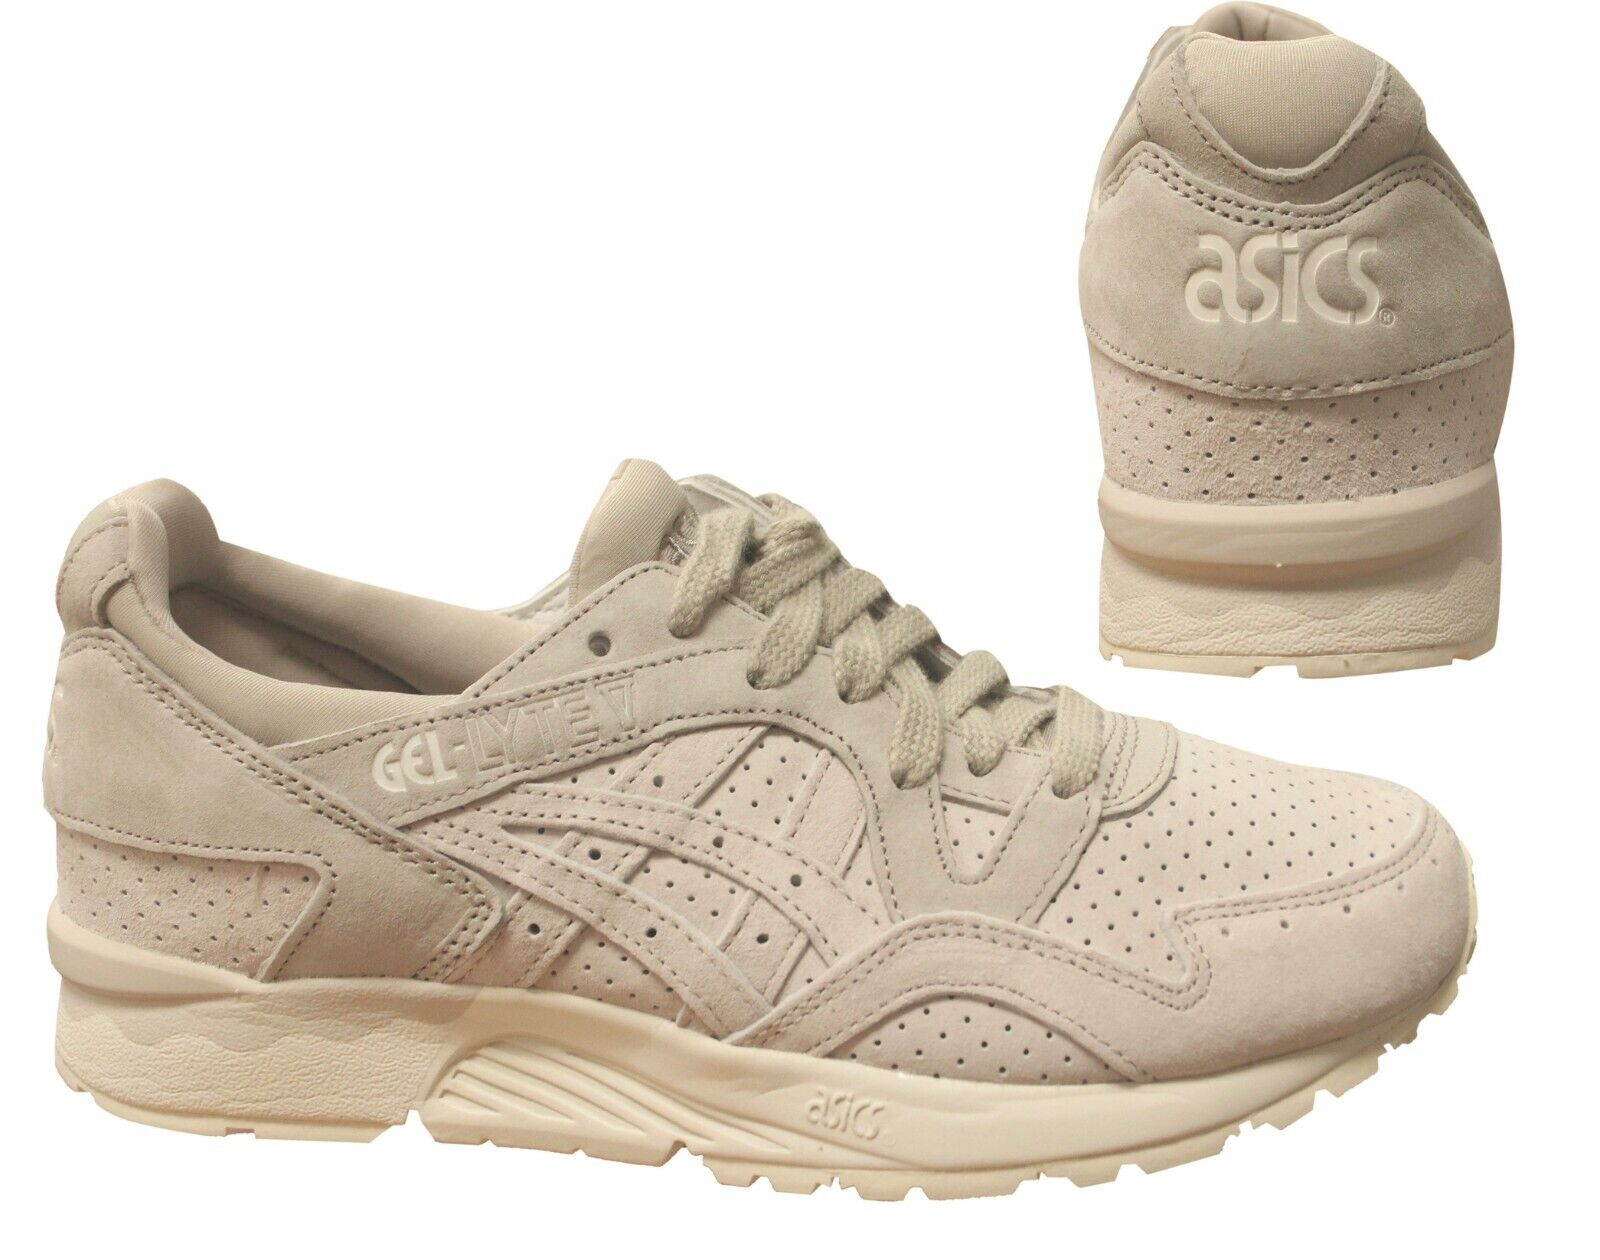 Details about Asics Gel Lyte V Grey Beige Leather Lace Up Casual Mens Trainers HL7K1 0202 X8B